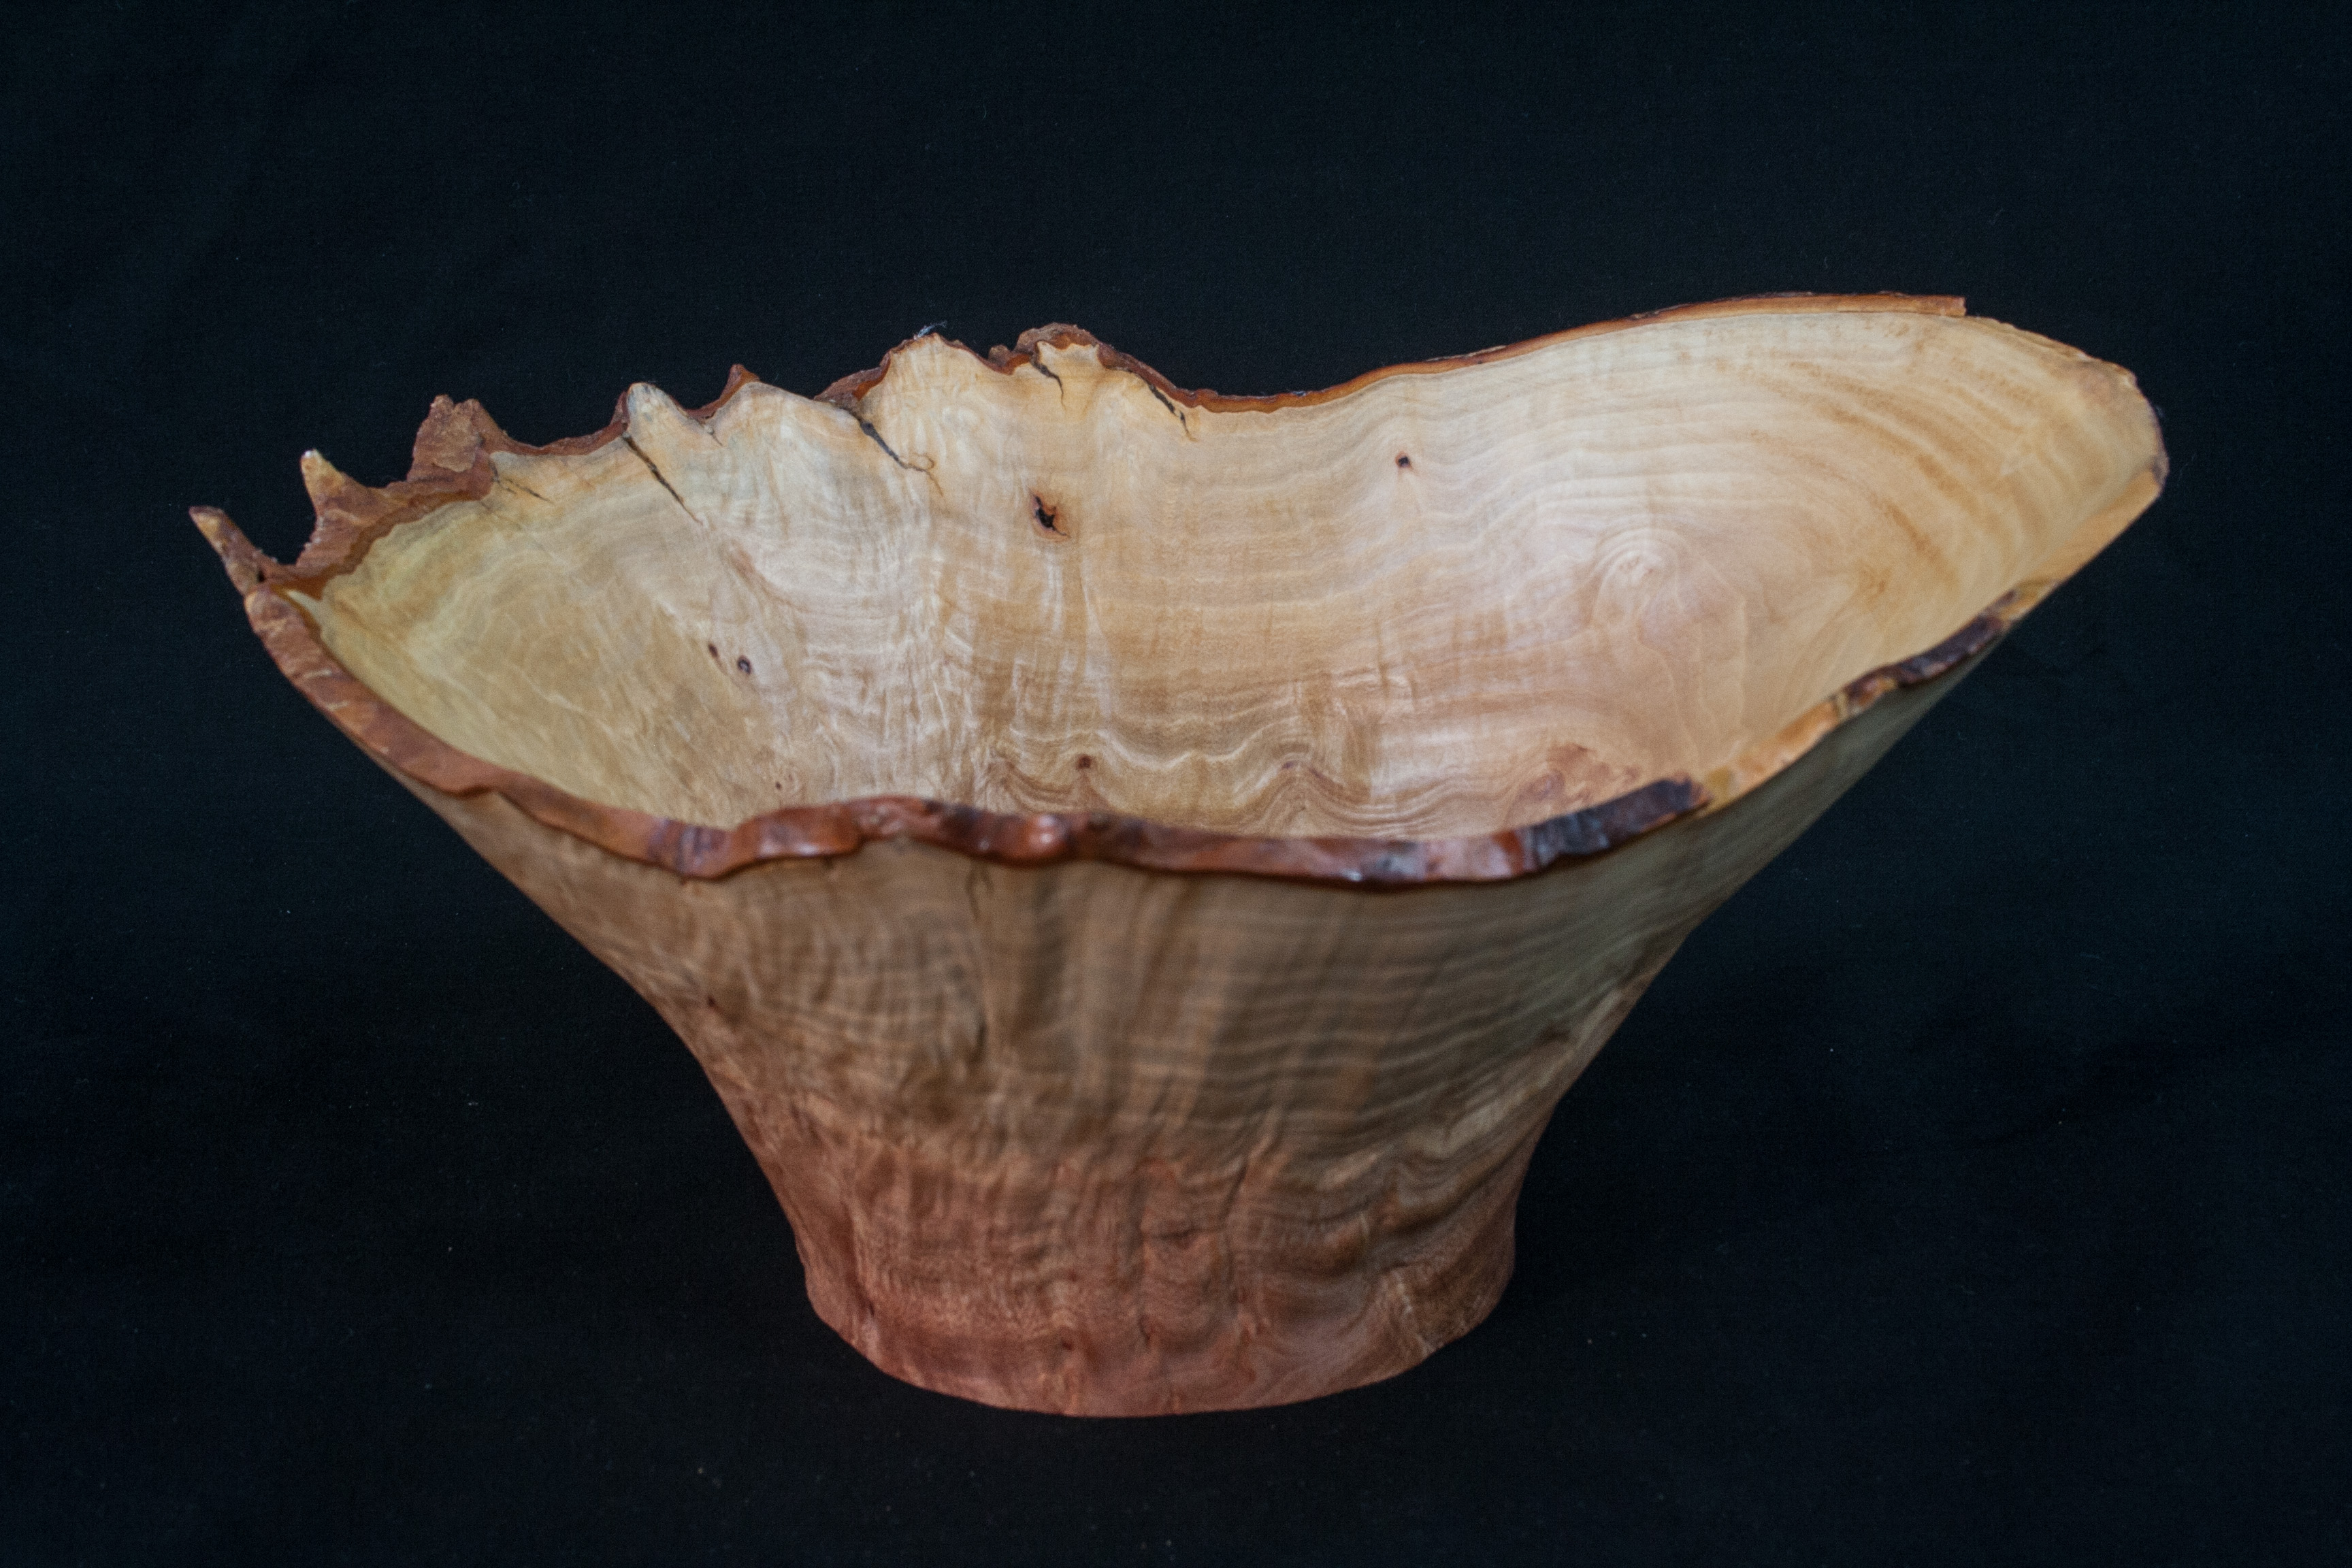 44 Madron Burl Natural Edge Distorted 10 x 5 ....... $109